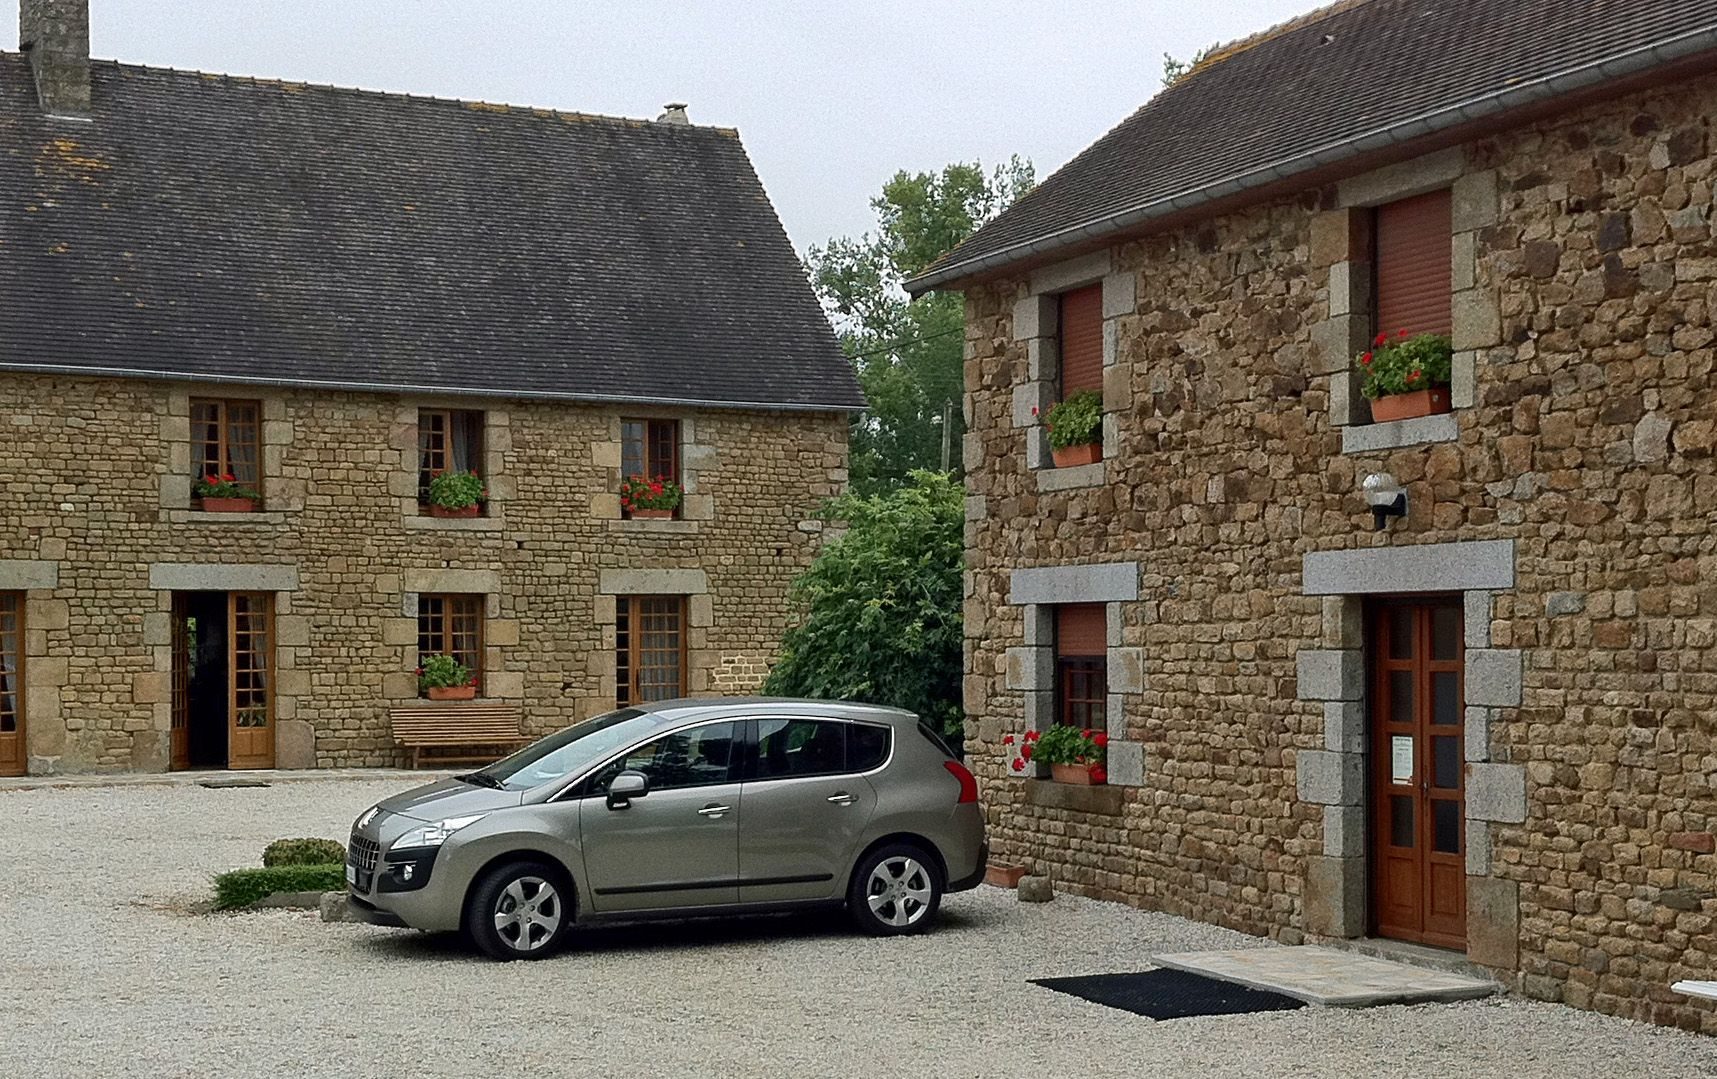 Peugeot 3008: France, Britain in a nice bed and breakfast